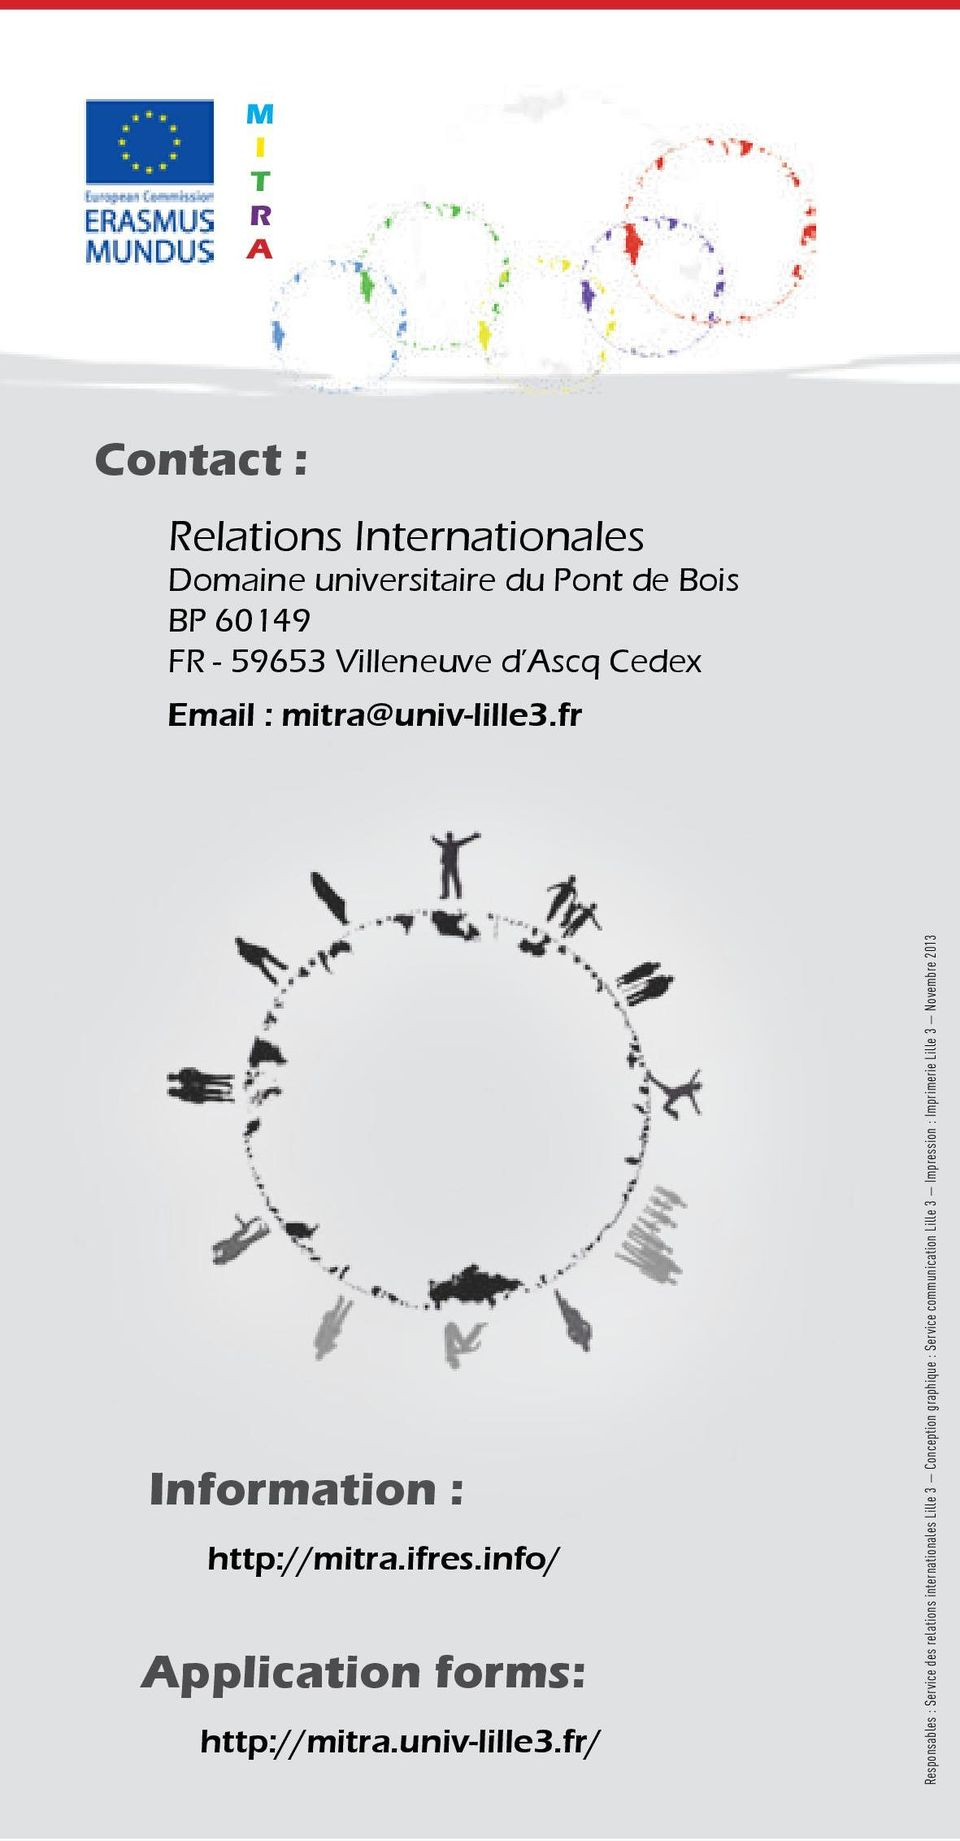 info/ Application forms: http://mitra.univ-lille3.